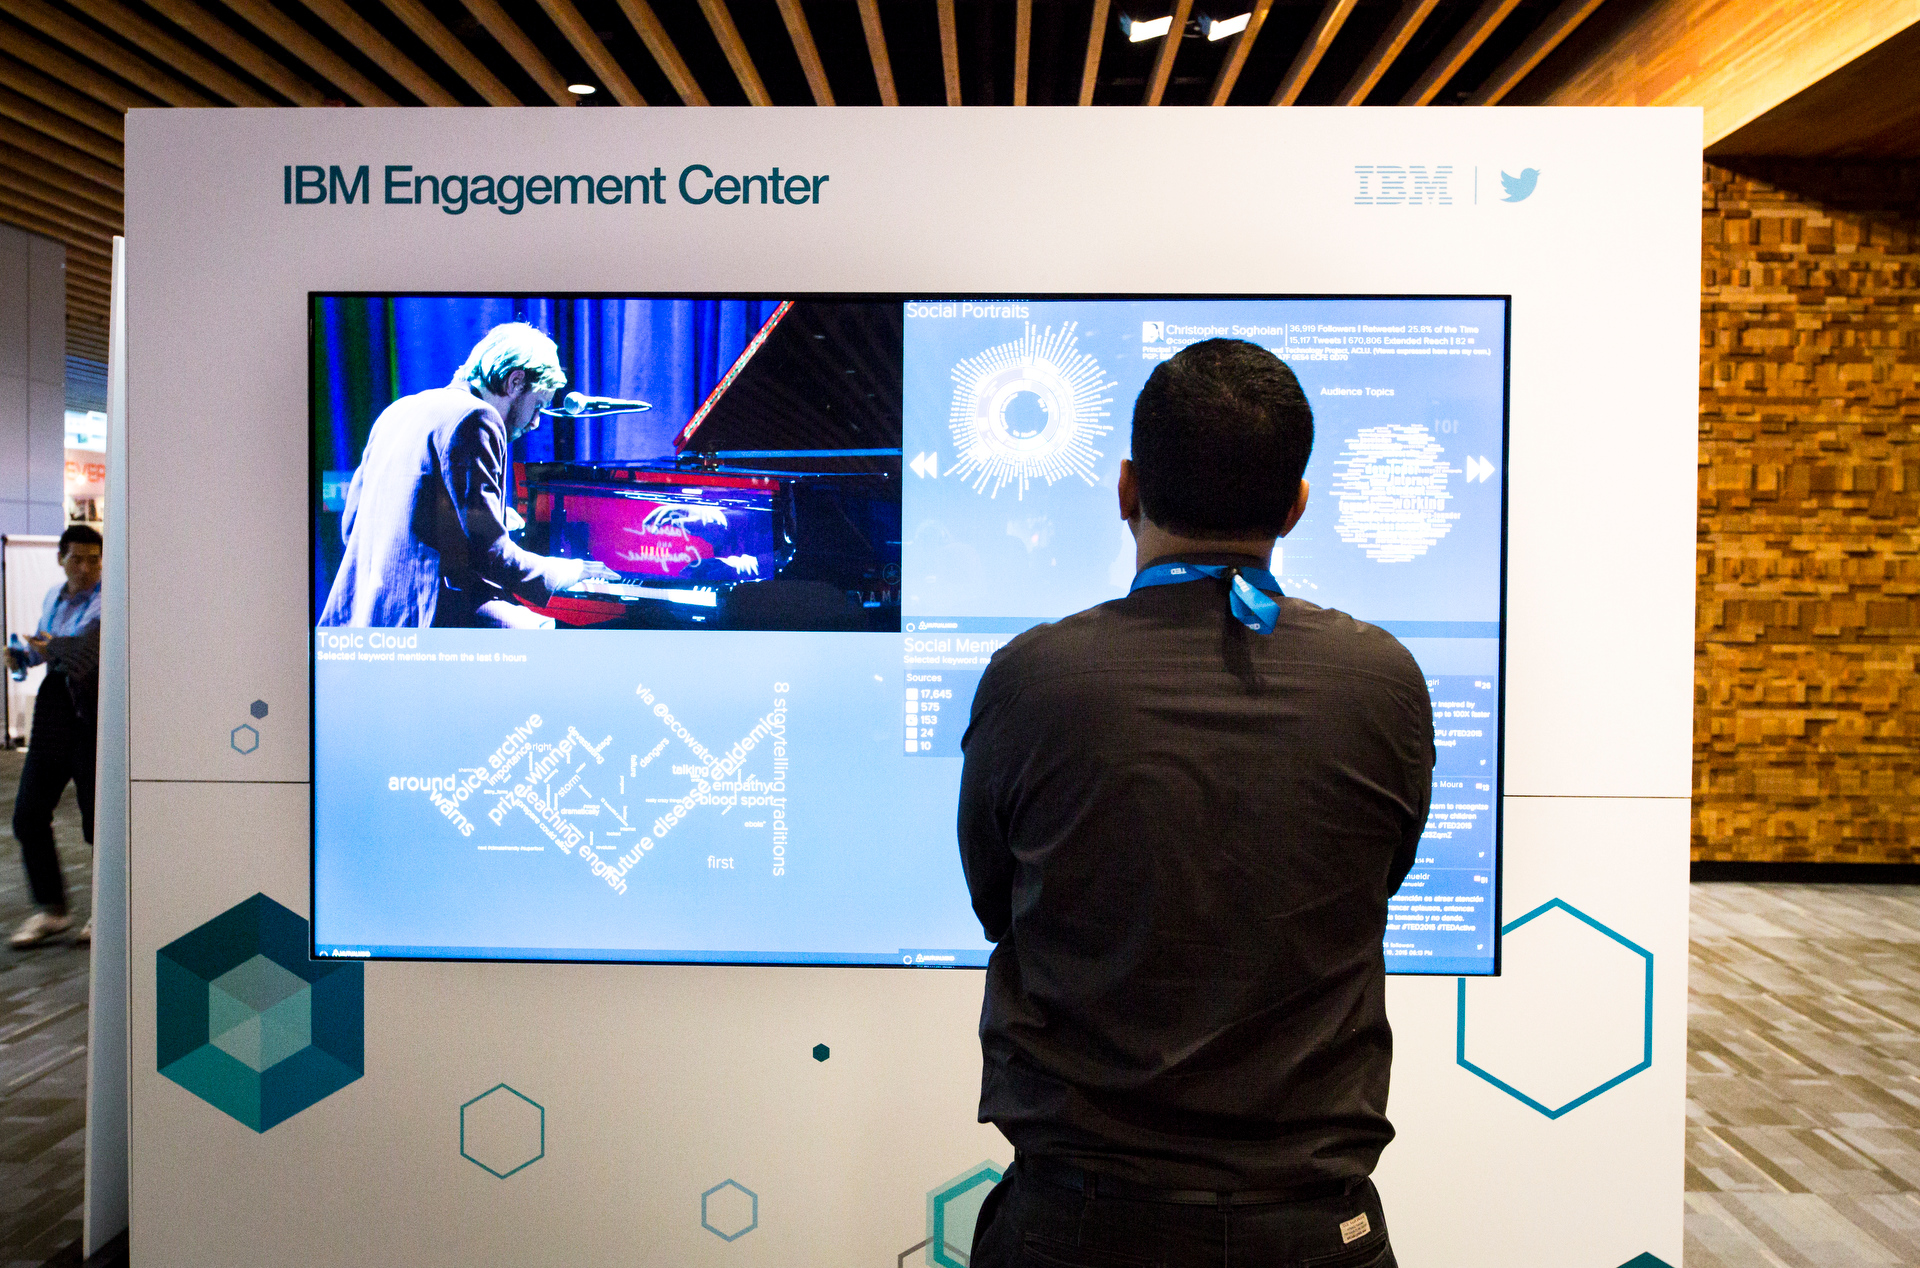 At The Engagement Center powered by IBM, attendees could see incredible data on TED2015, visualized for easy understandability. Photo: Ryan Lash/TED